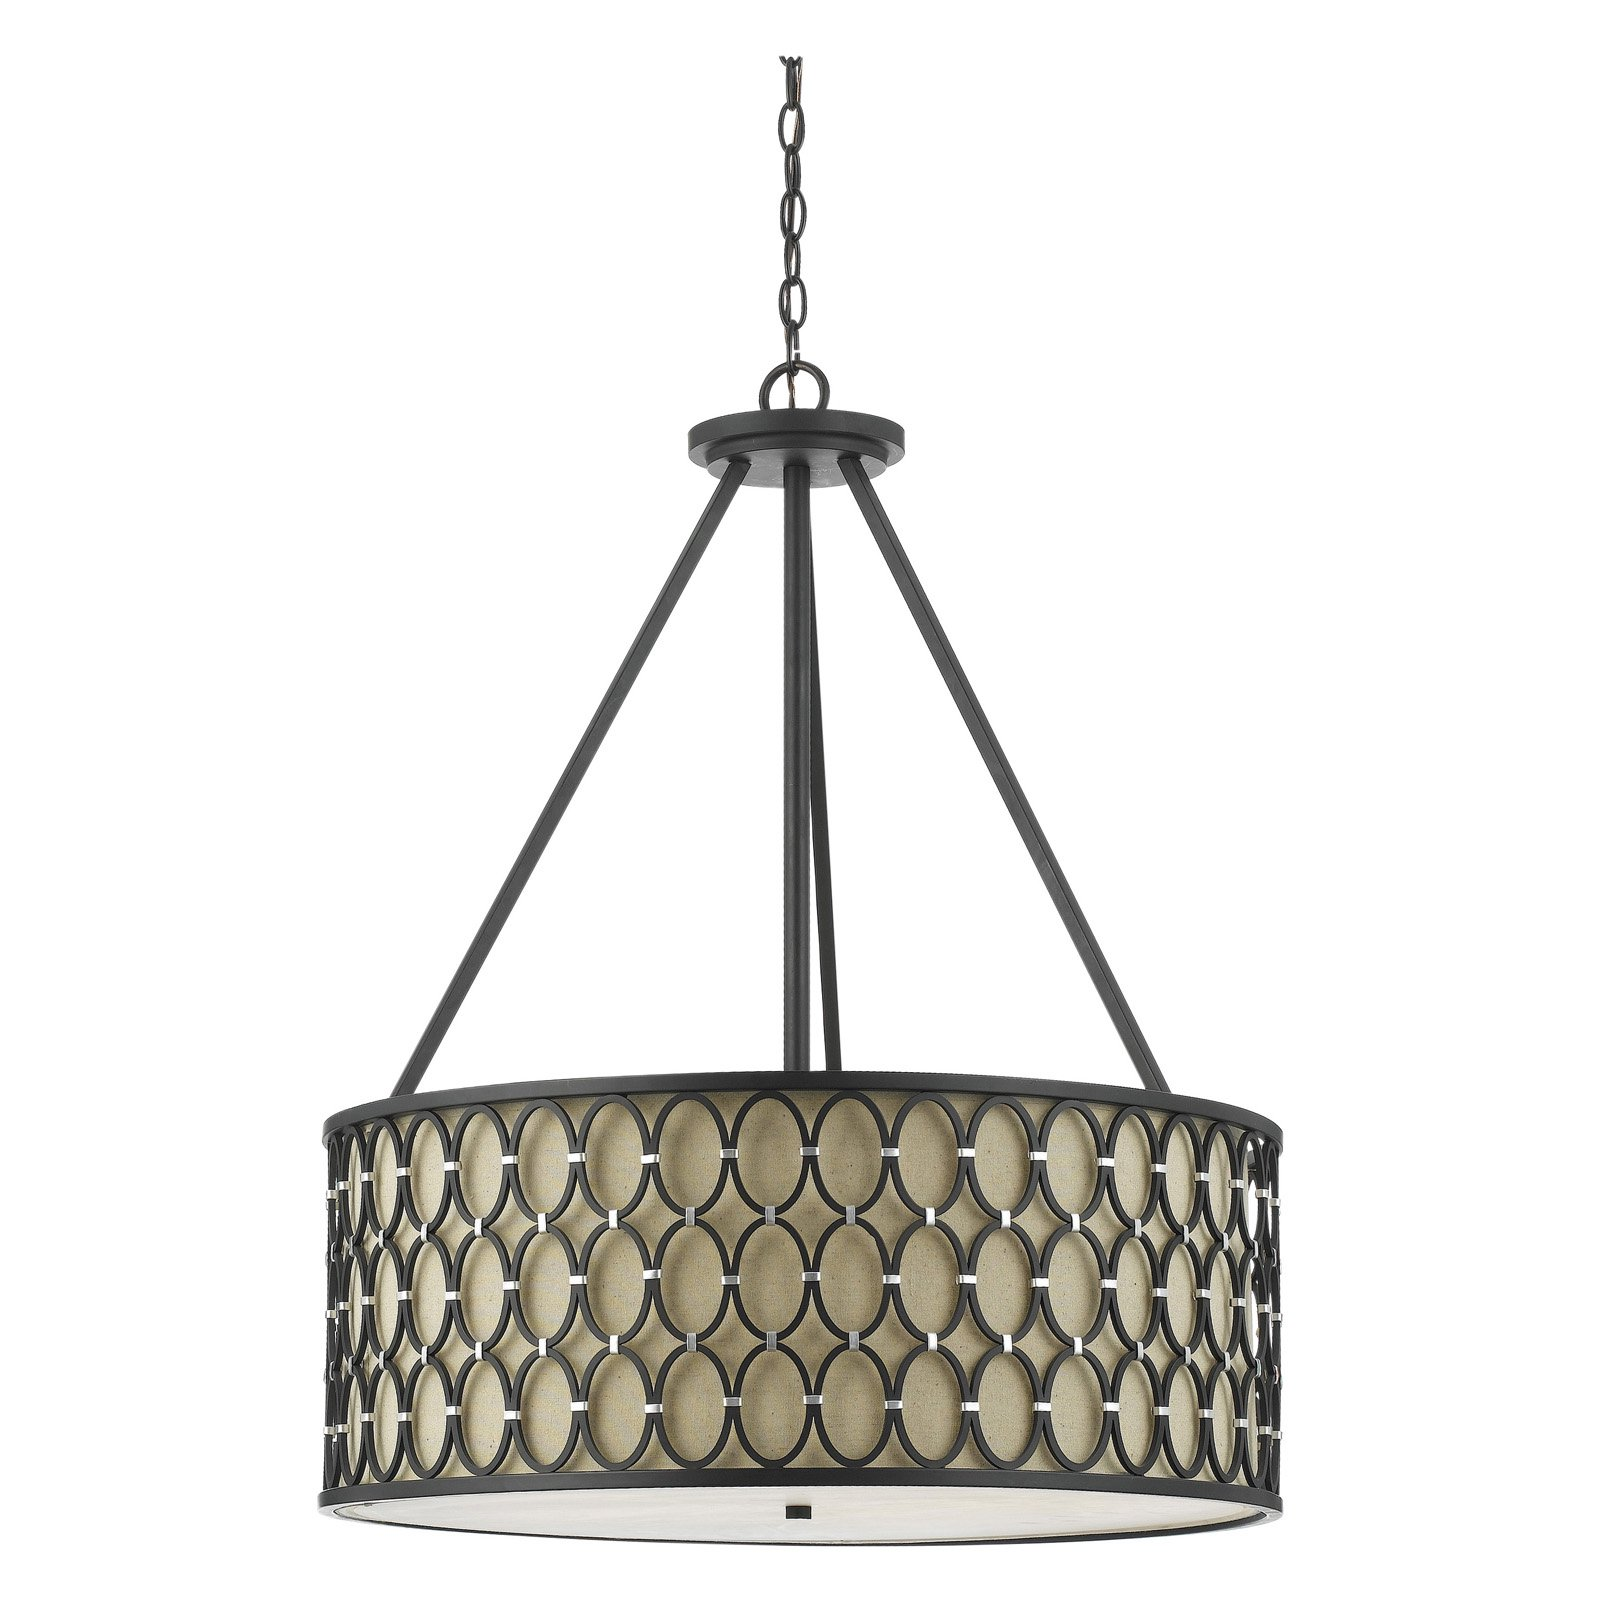 AF Lighting 8218-5H Large 8218 Pendant